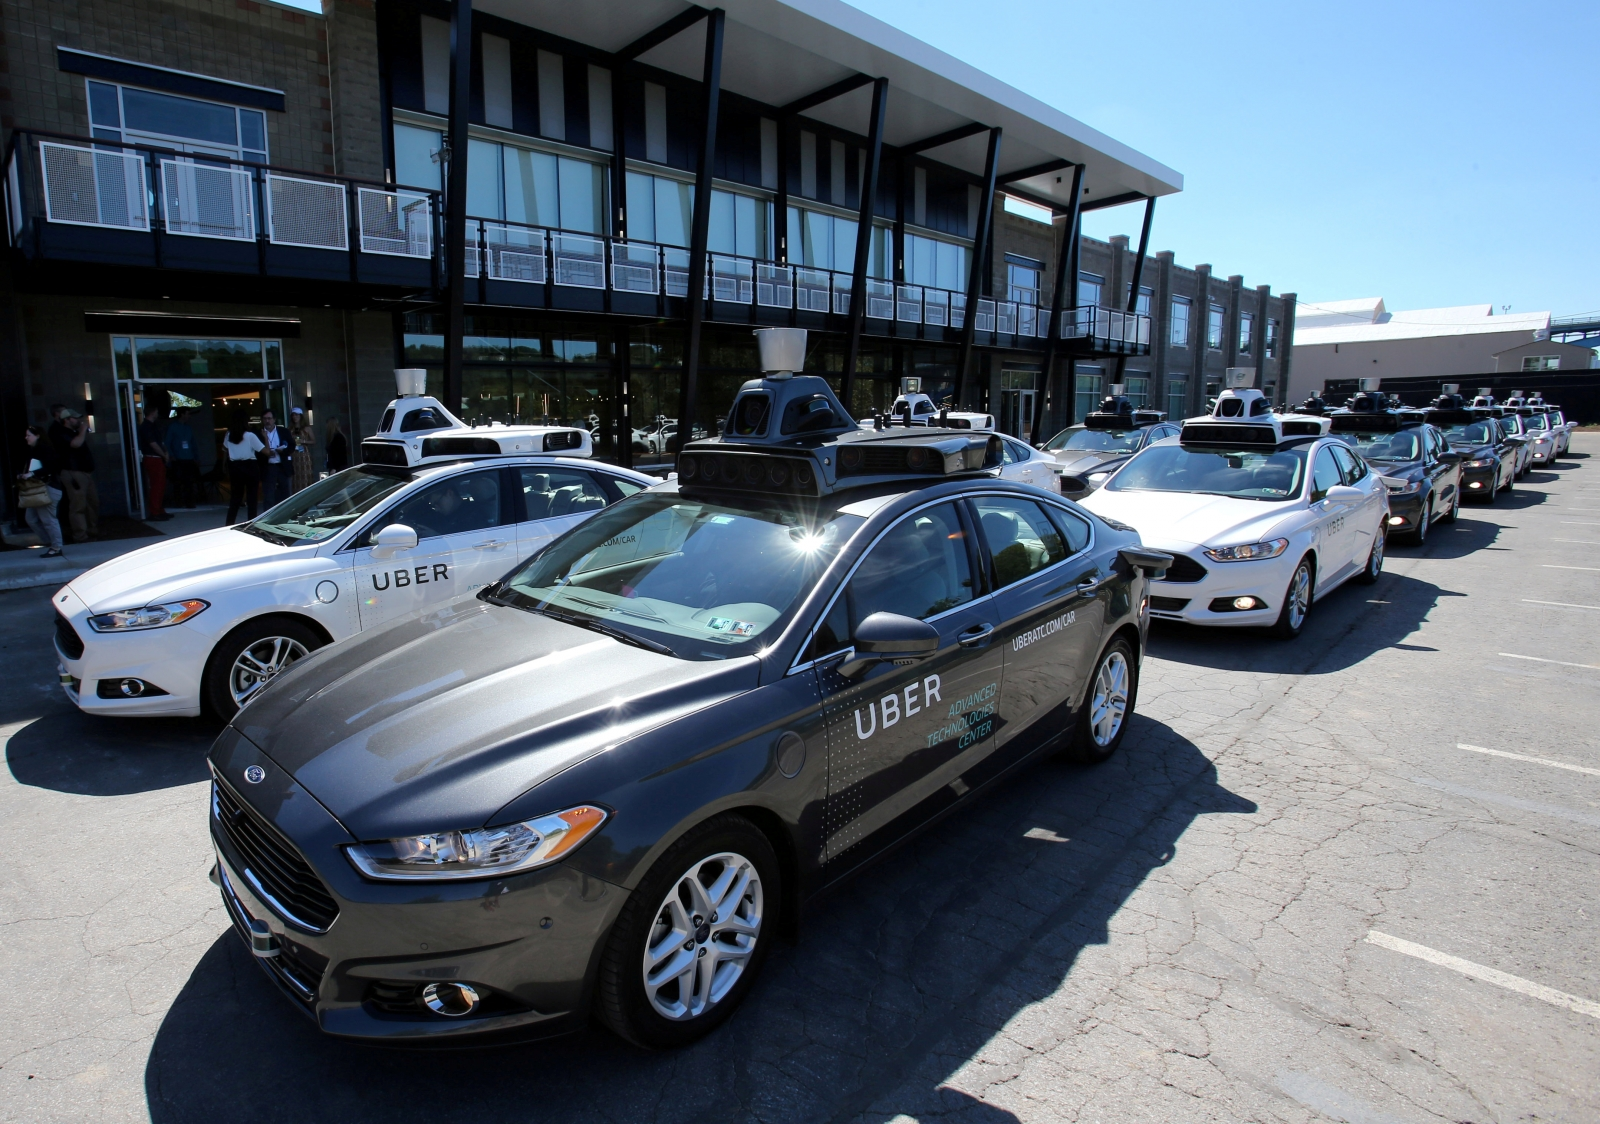 Uber pushes back against demand to cease self-driving in California